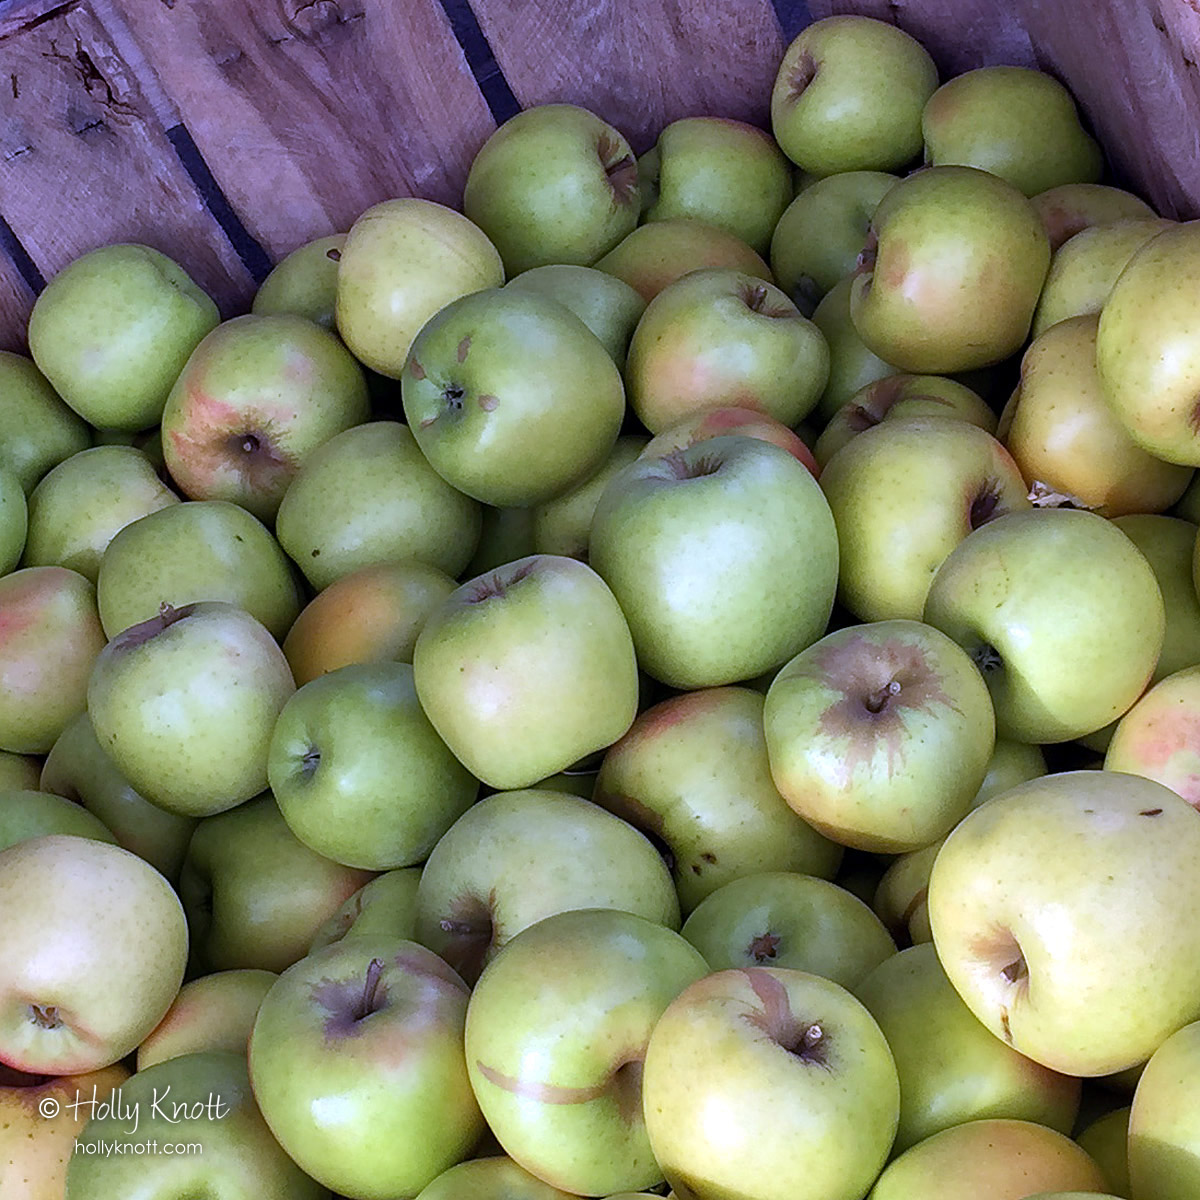 Colorful apples in a bin at Taft Farms, Great Barrington